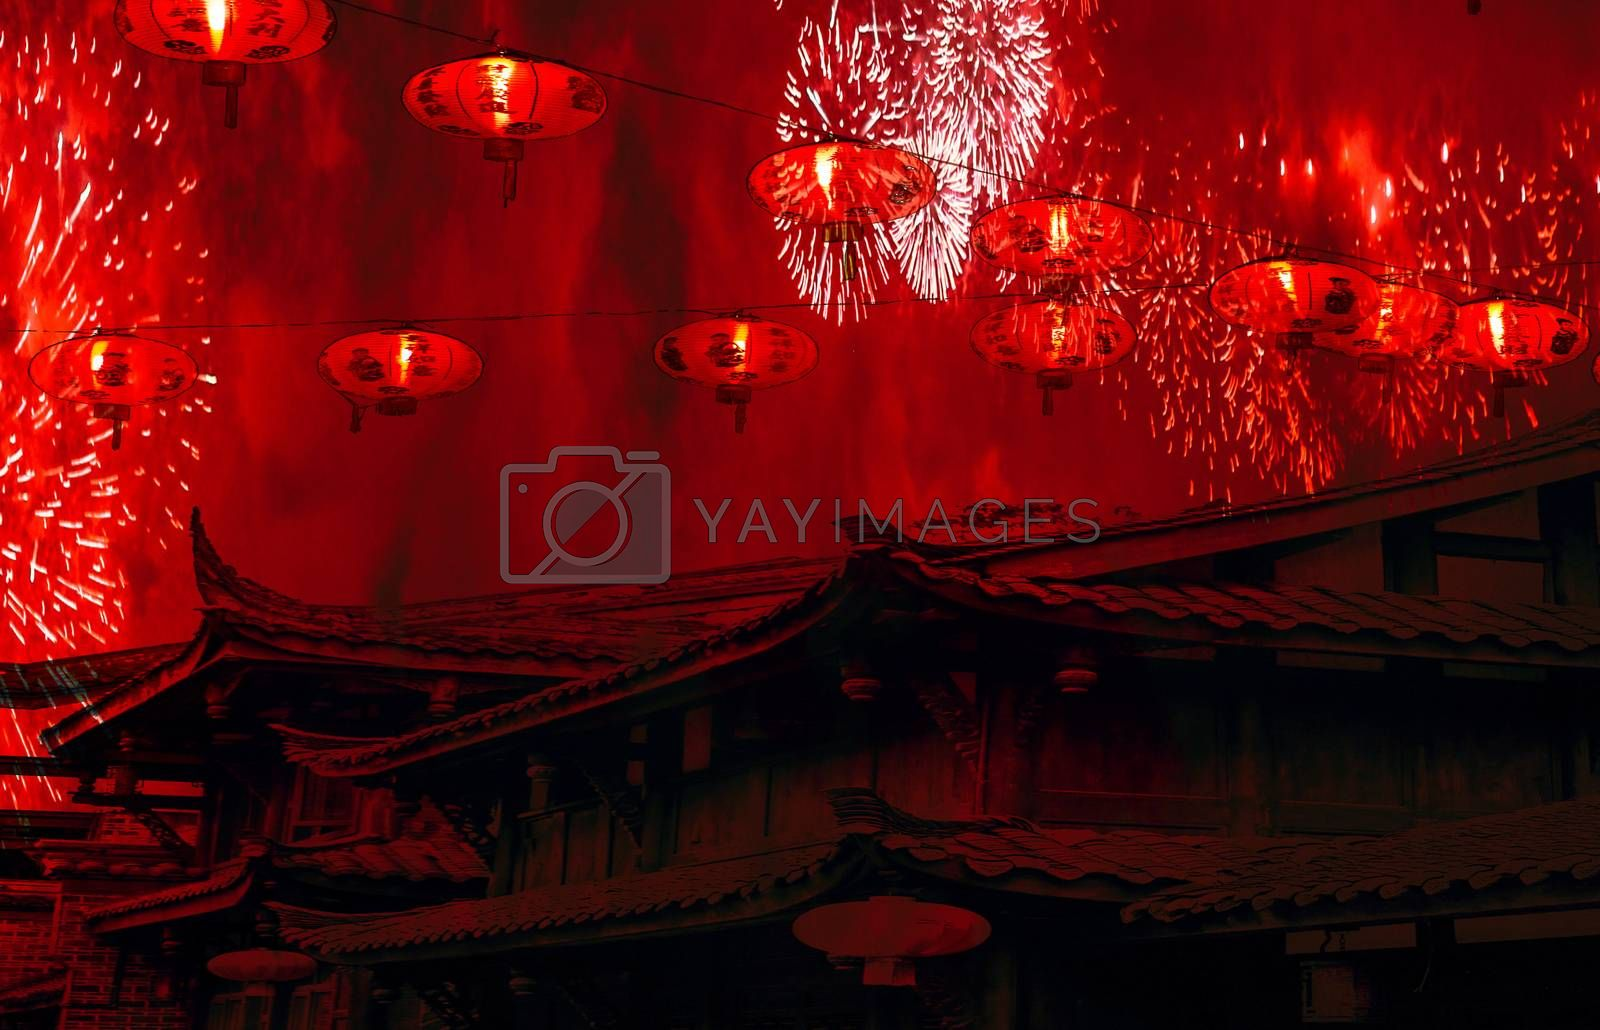 Chinese new year celebration chinese rooftops with lanterns in the sky and fireworks with red smoke amazing background